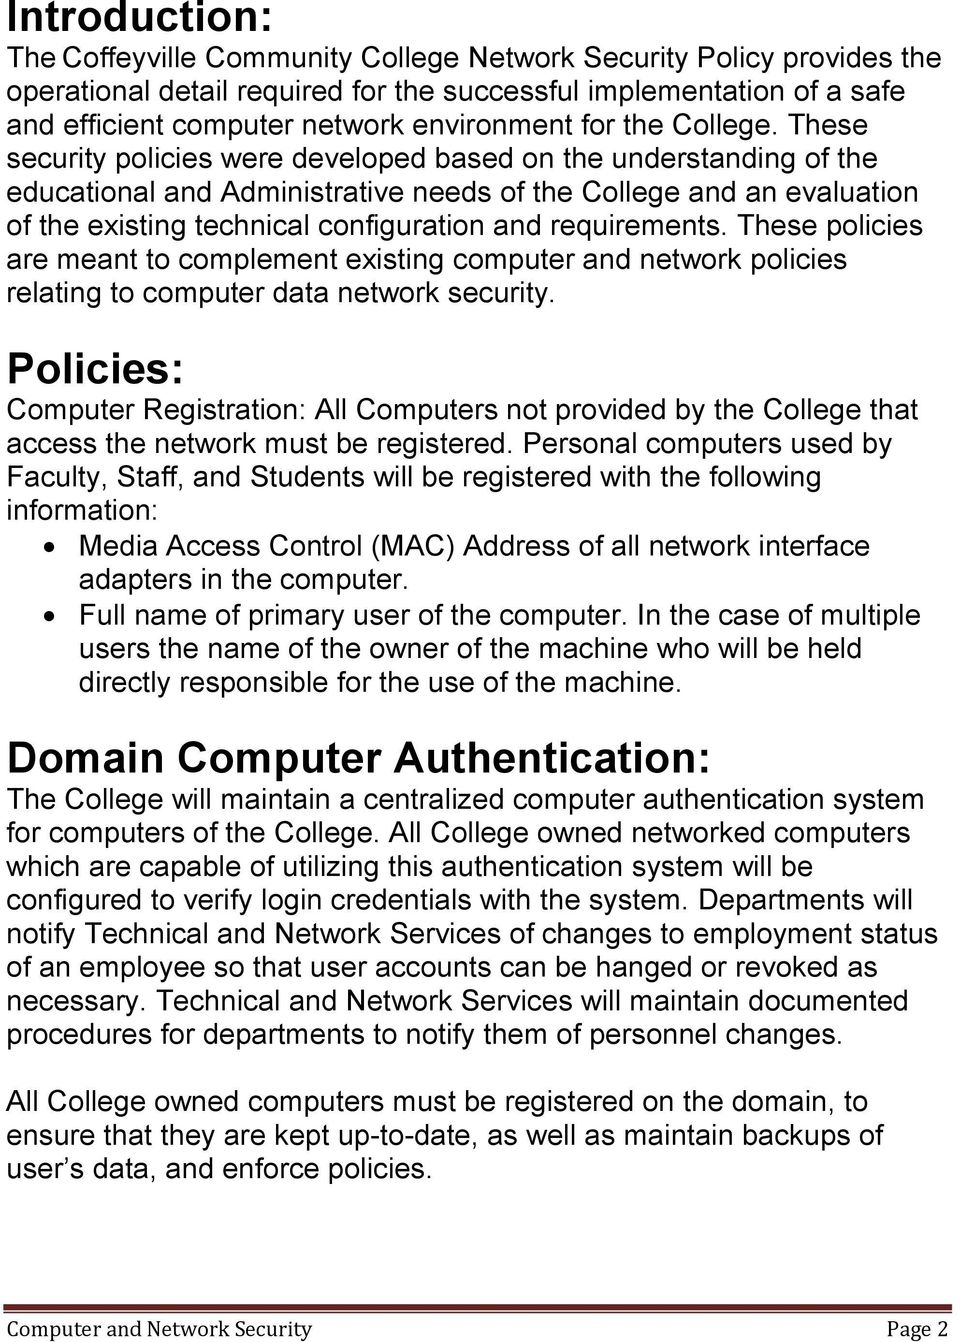 These security policies were developed based on the understanding of the educational and Administrative needs of the College and an evaluation of the existing technical configuration and requirements.